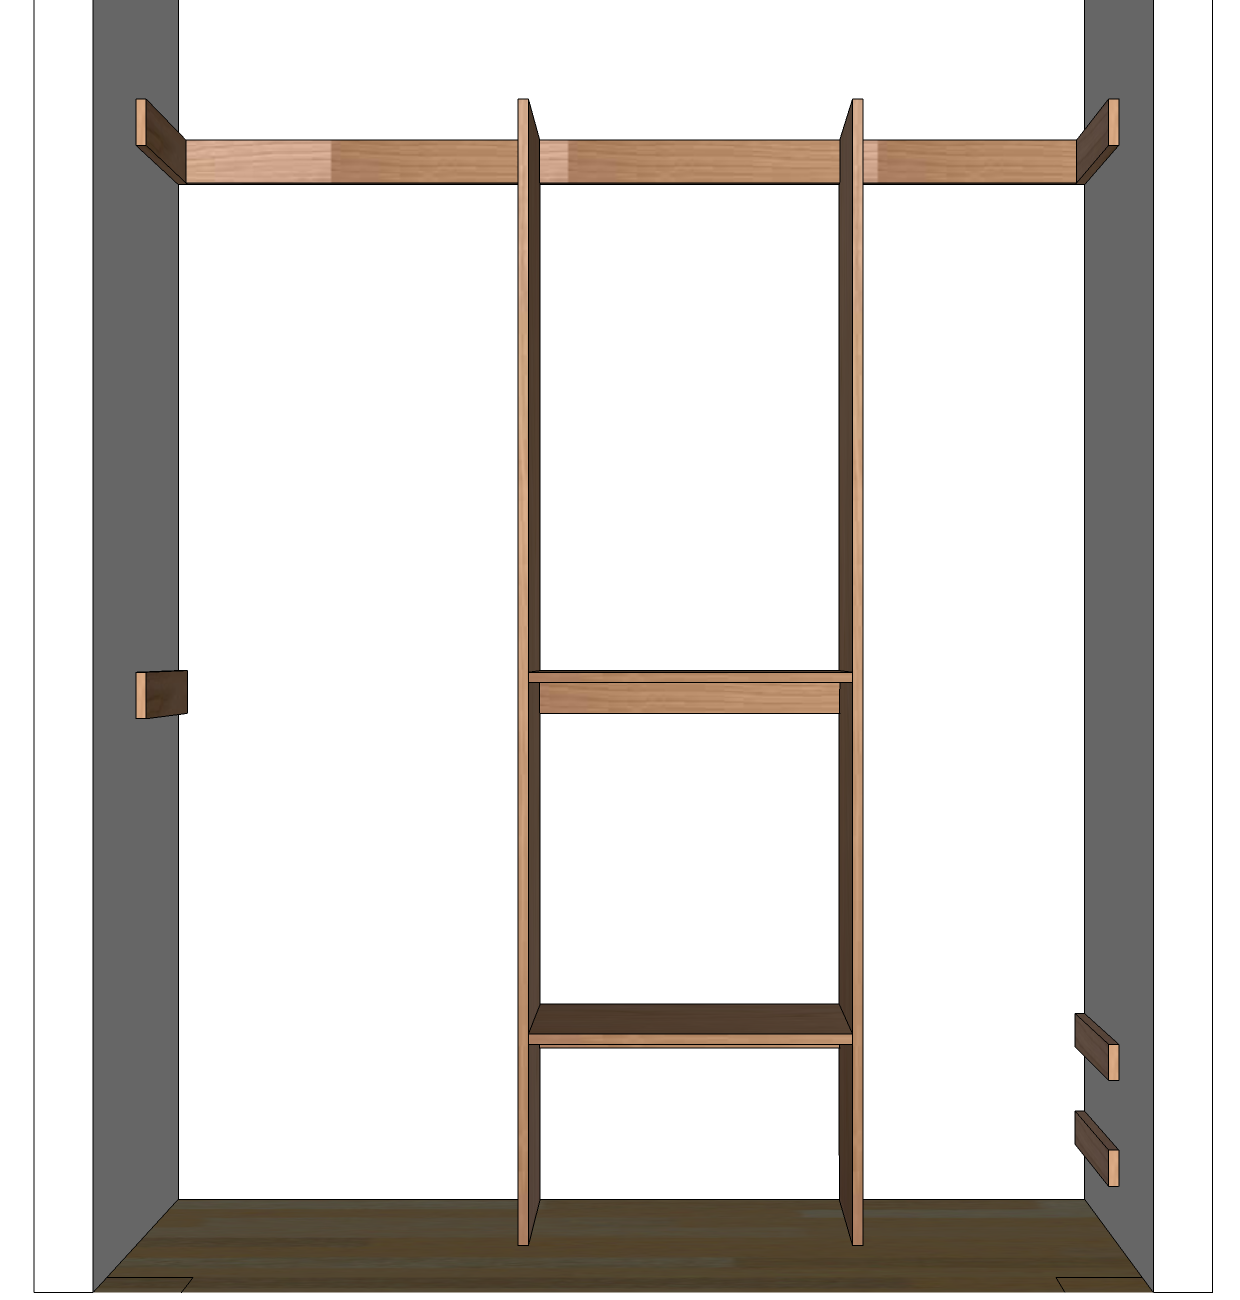 Build Wooden Wood Closet Organizers Plans Plans Download wood doweling